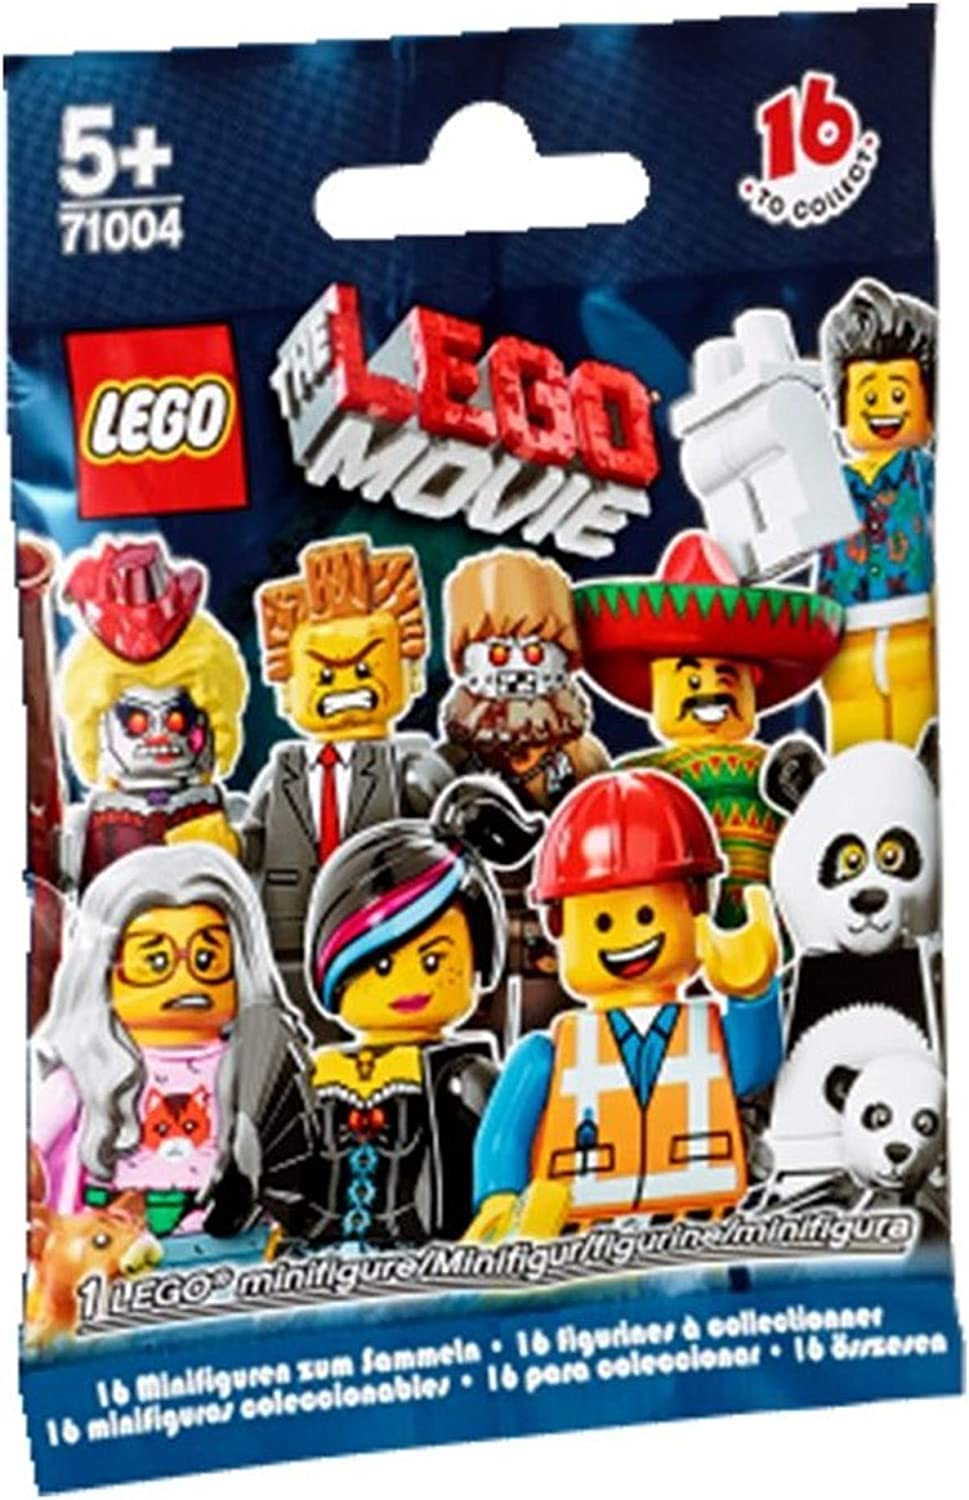 LEGO NEW SERIES 12 THE MOVIE COMPLETE SET OF 16 MINIFIGURES MINIFIGS 71004 FIGS